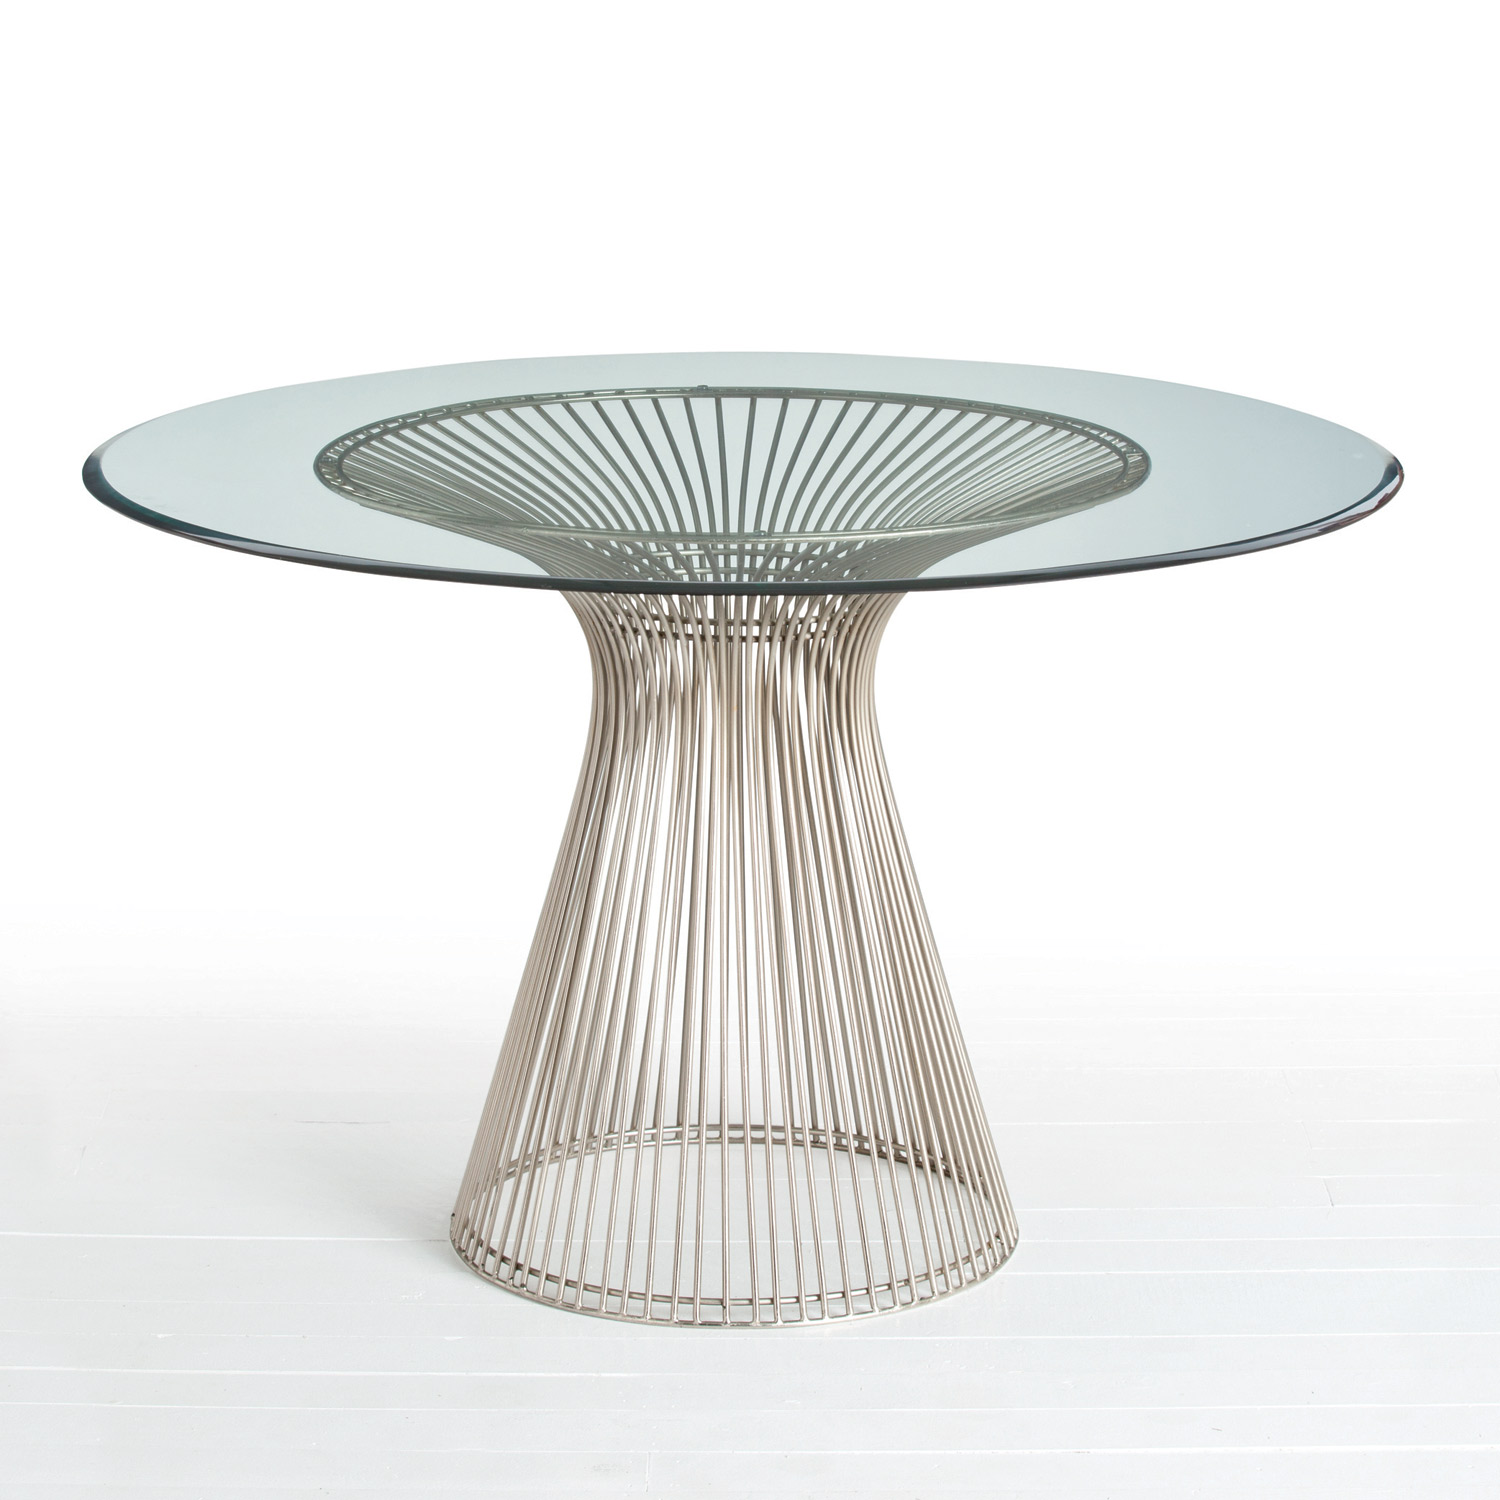 Stylish Pedestals For Tables